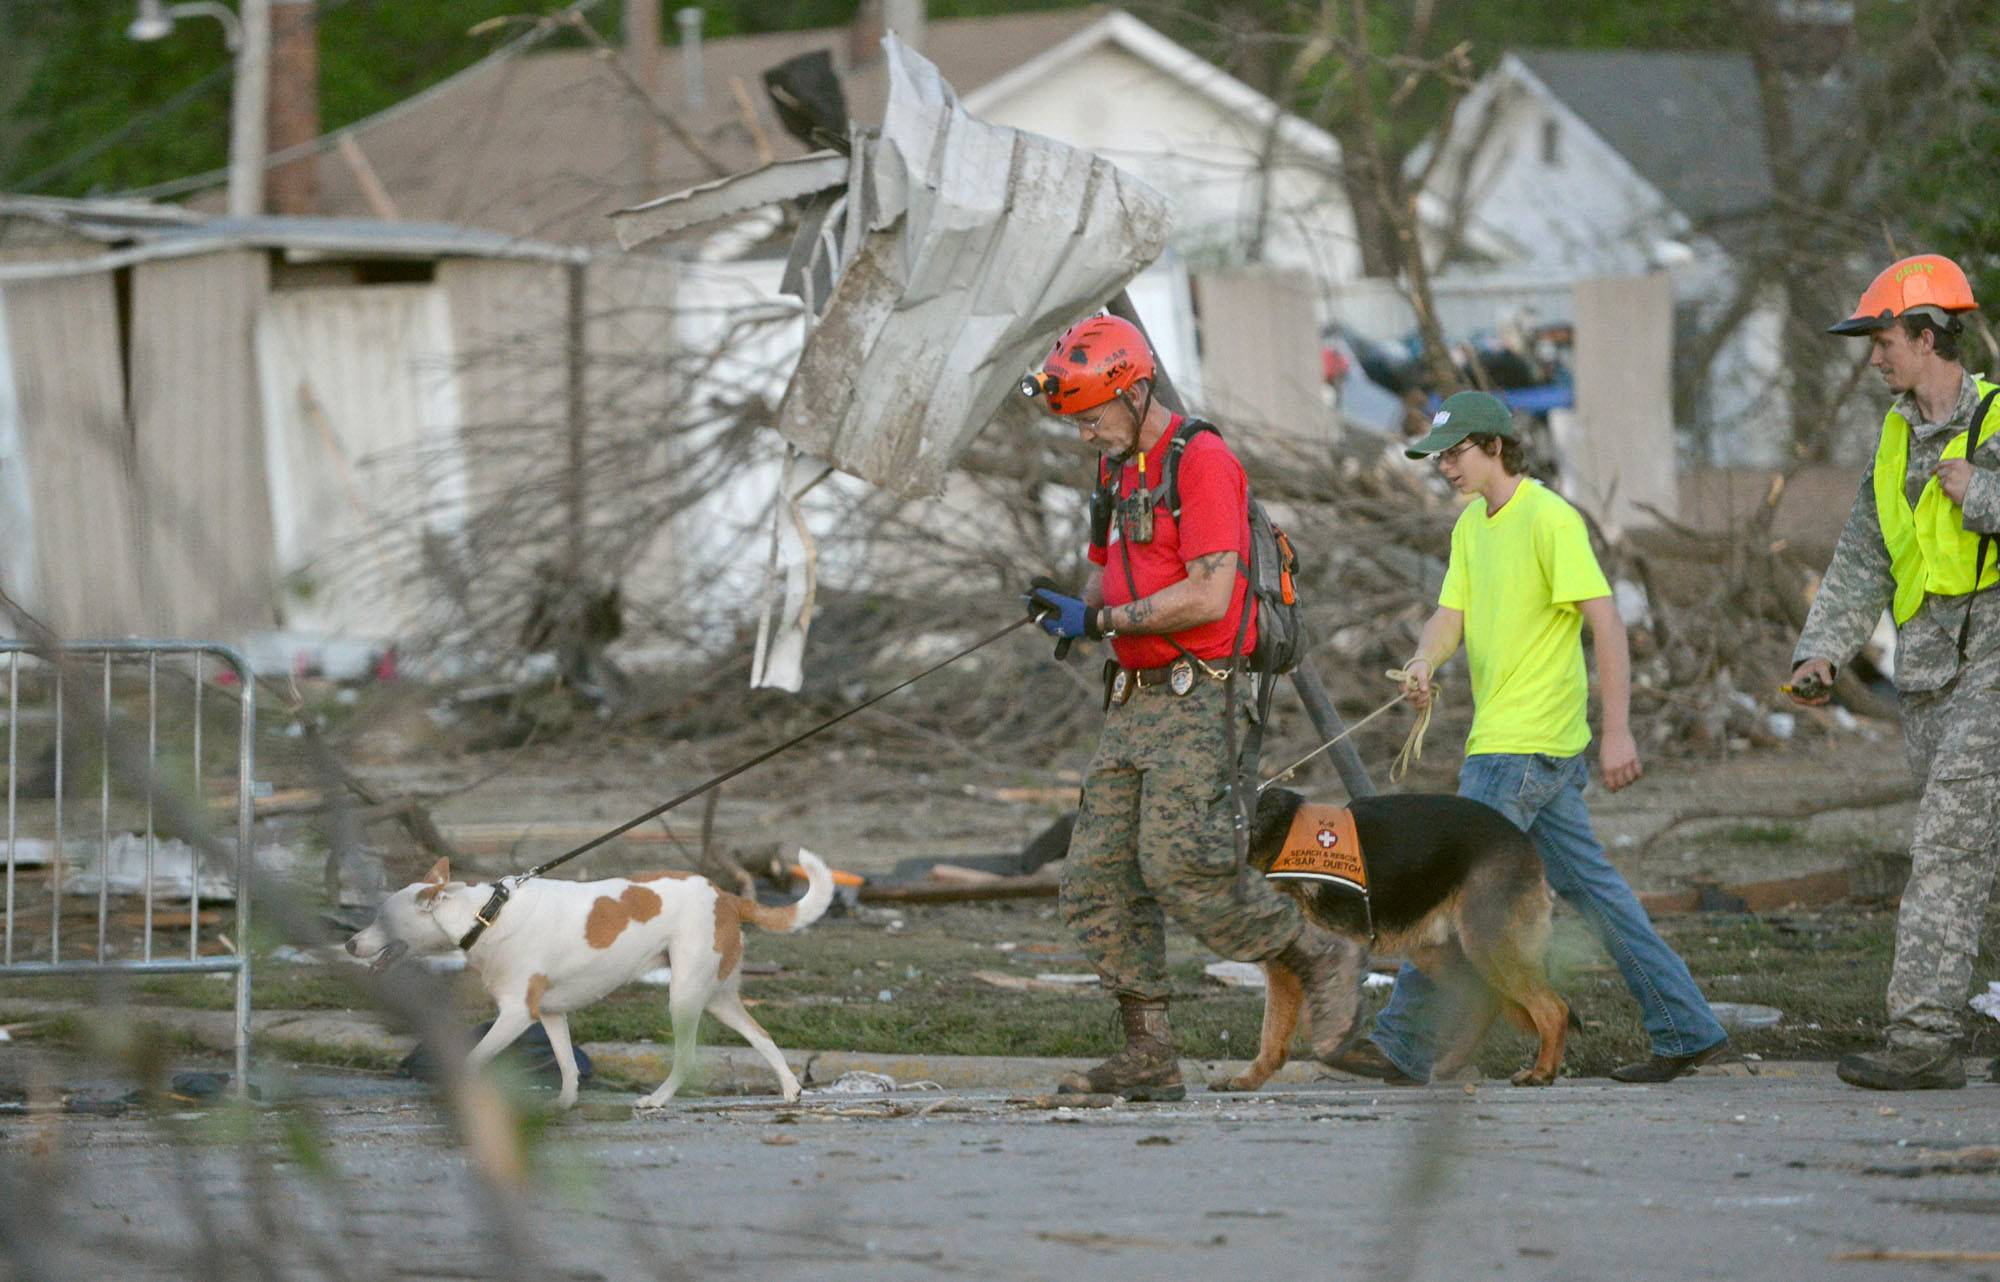 A K-9 rescue unit walks along Military Street in Baxter Springs, Kan., April 27, 2014, as they survey the damage from Sunday's tornado. A powerful storm system rumbled through the central and southern United States on Sunday, spawning a massive tornado that carved through Little Rock's northern suburbs and another that hit Oklahoma and Kansas.